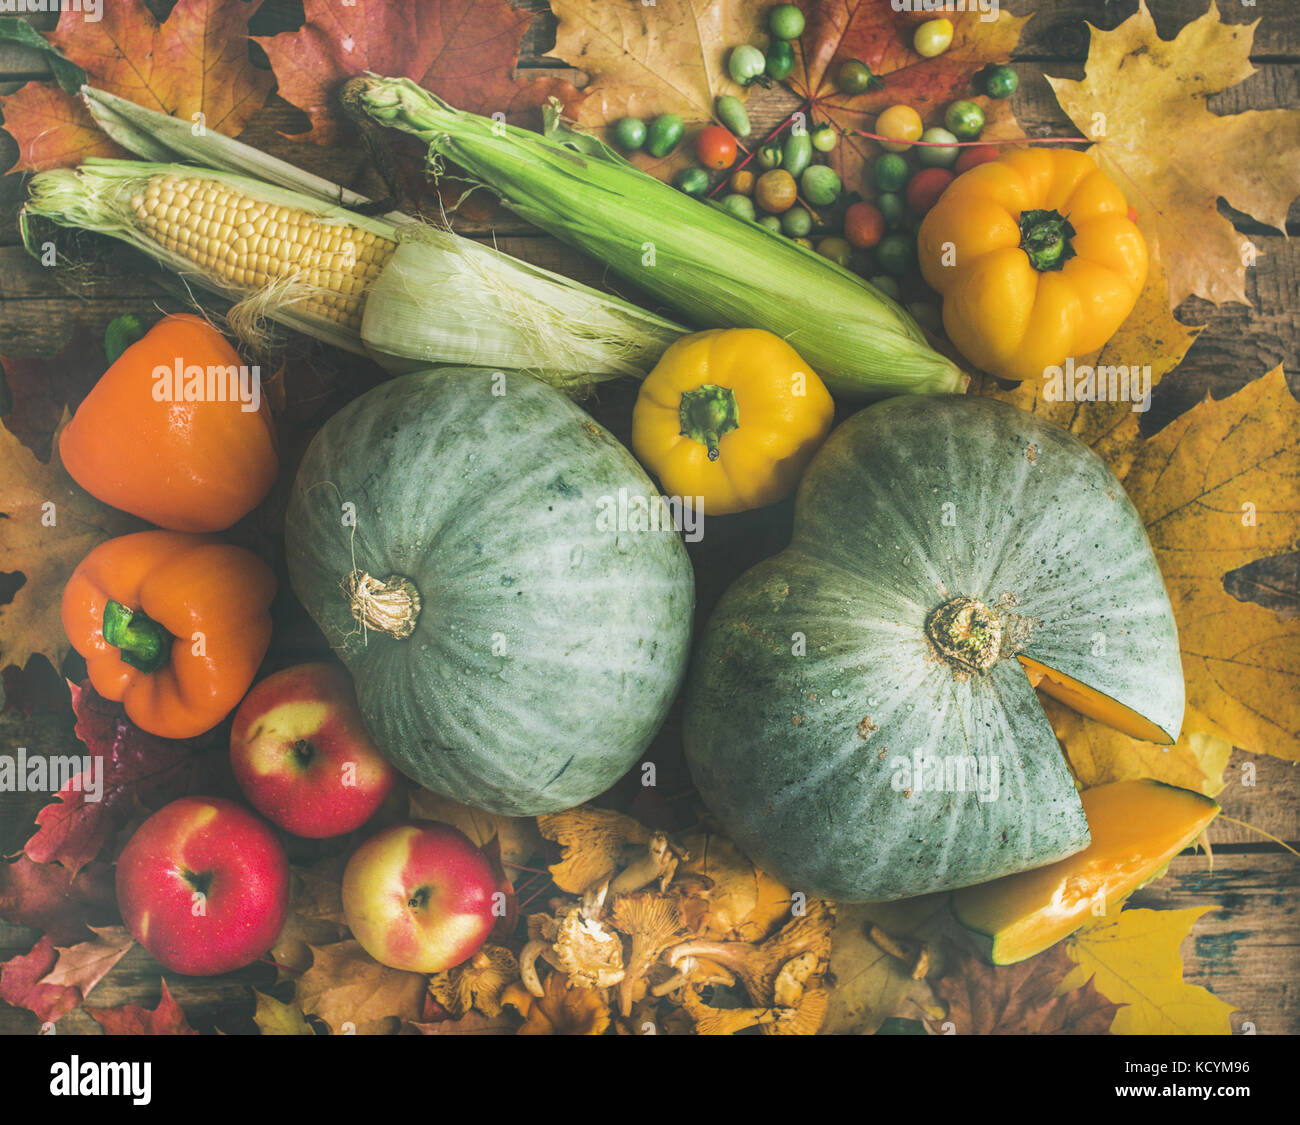 Fall vegetables assortment over wooden table background - Stock Image